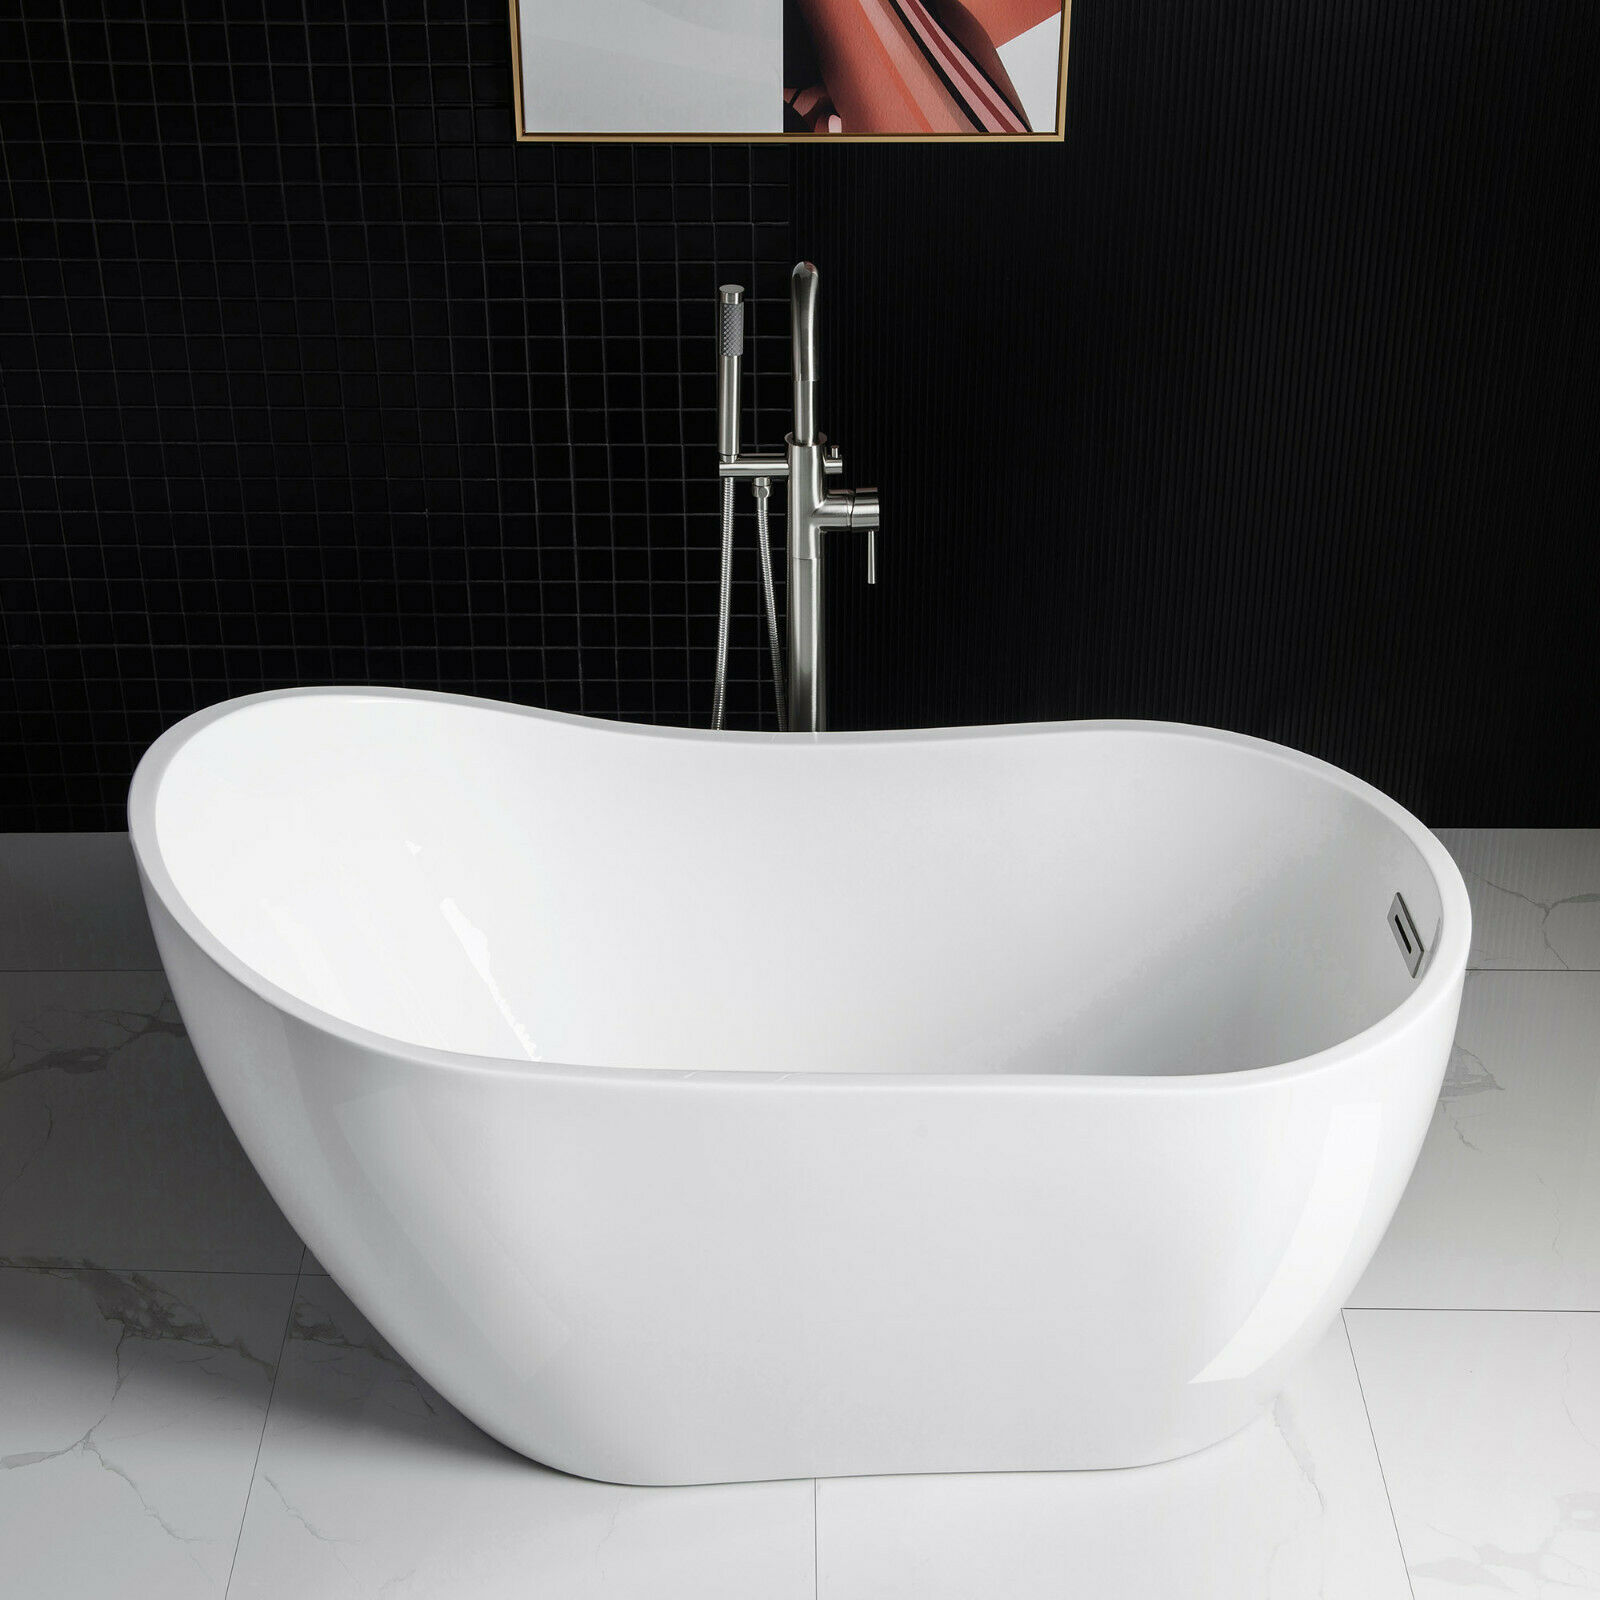 Bathtubs and Overflow Set With füllfuktion a564crm2